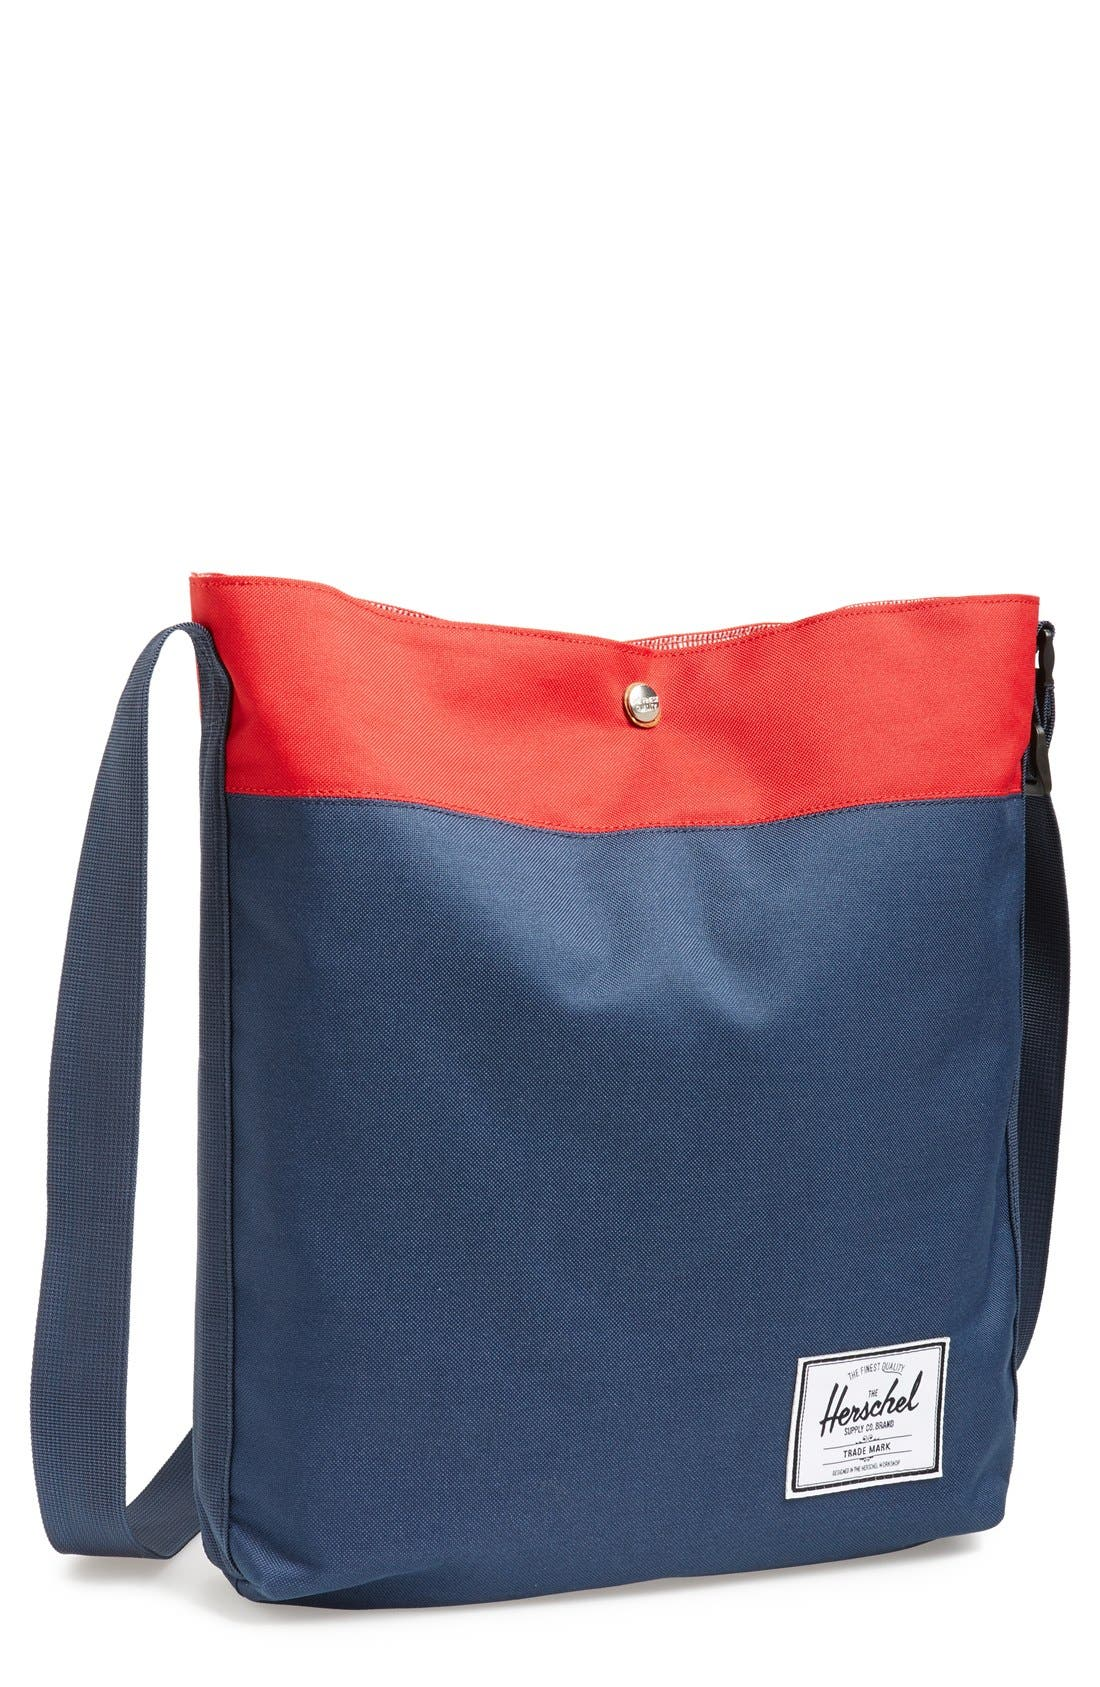 Alternate Image 1 Selected - Herschel Supply Co. 'Ottawa' Tote Bag